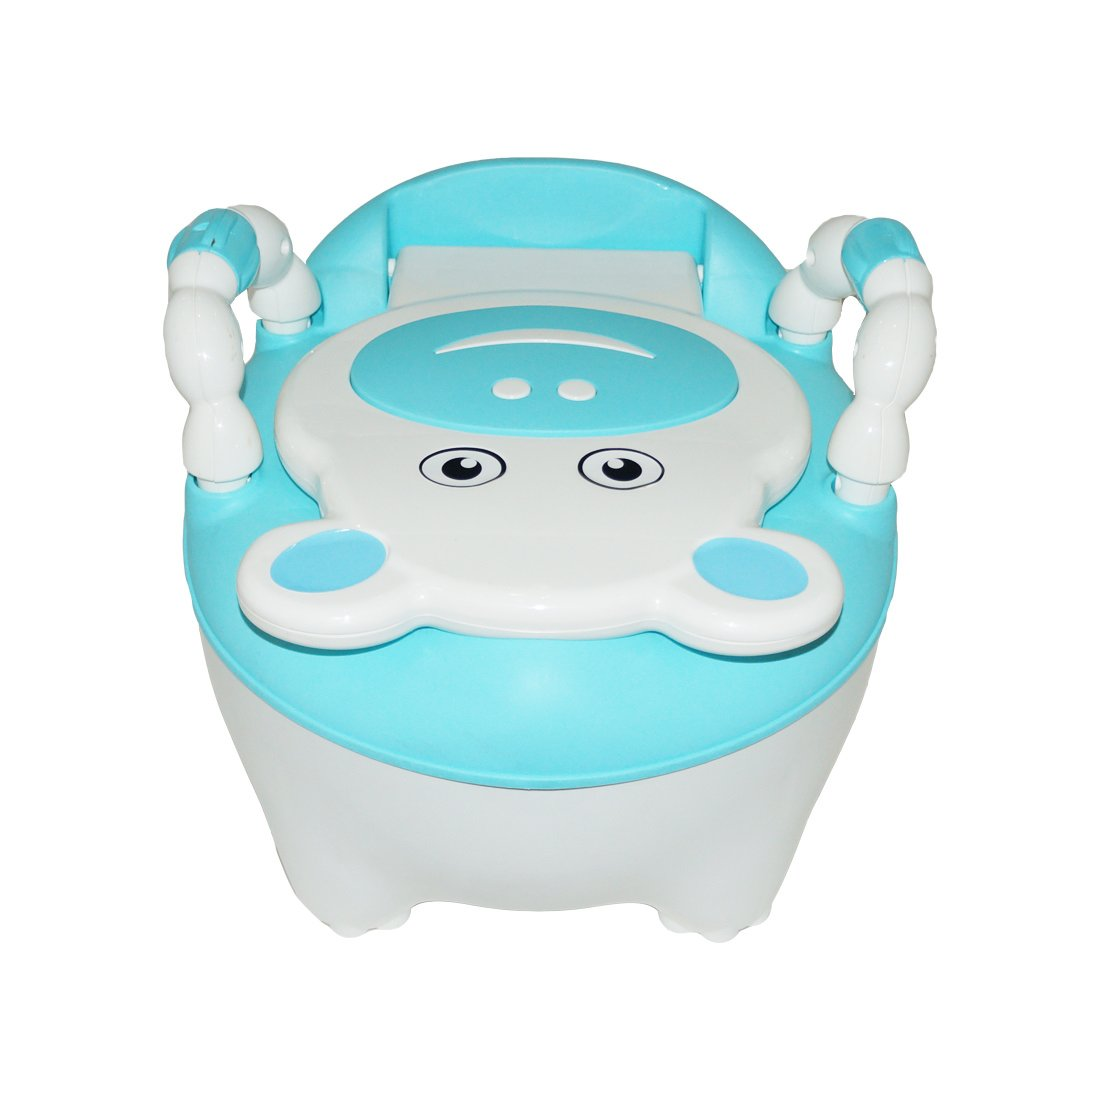 Muren Kids designer potty seat